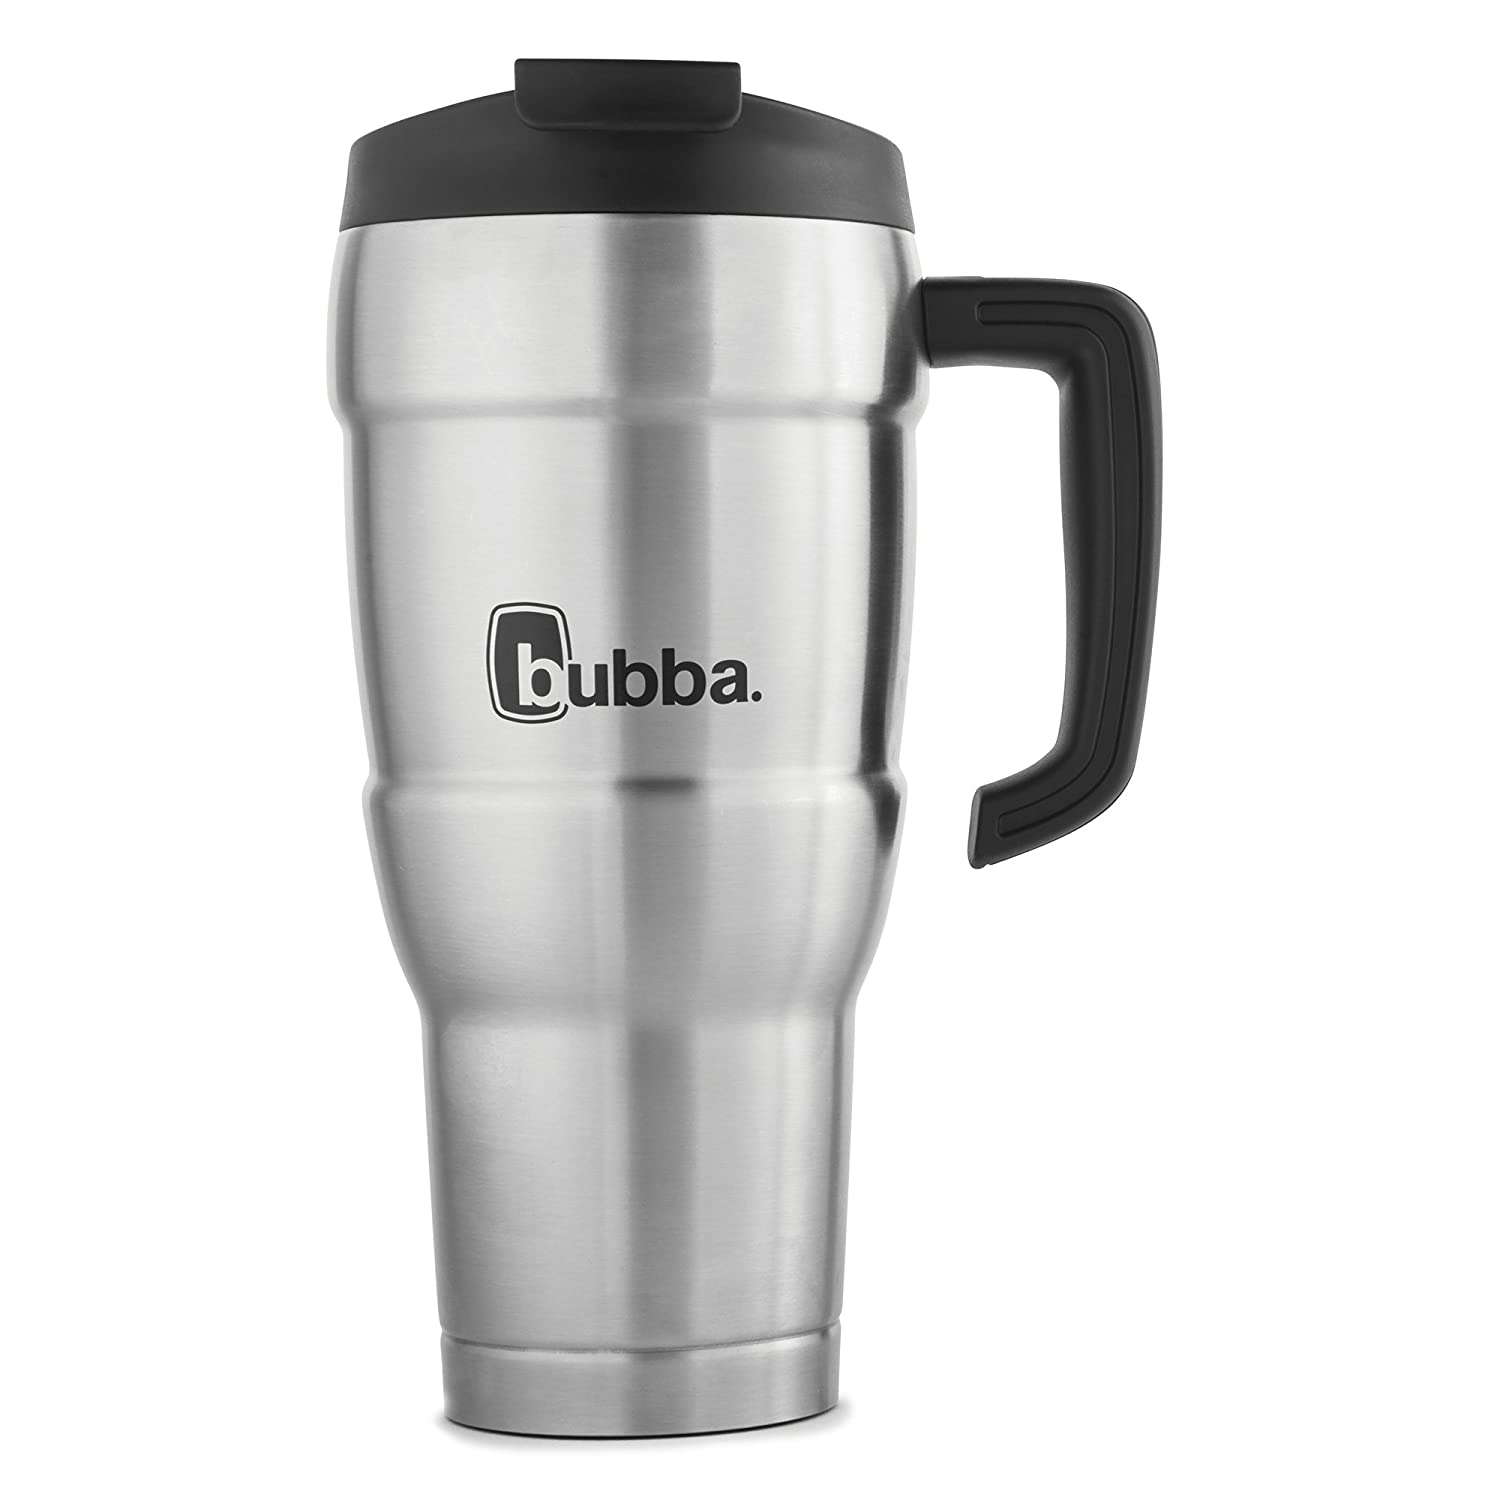 bubba Hero XL Vacuum-Insulated Stainless Steel Travel Mug, 30 oz., Stainless Steel